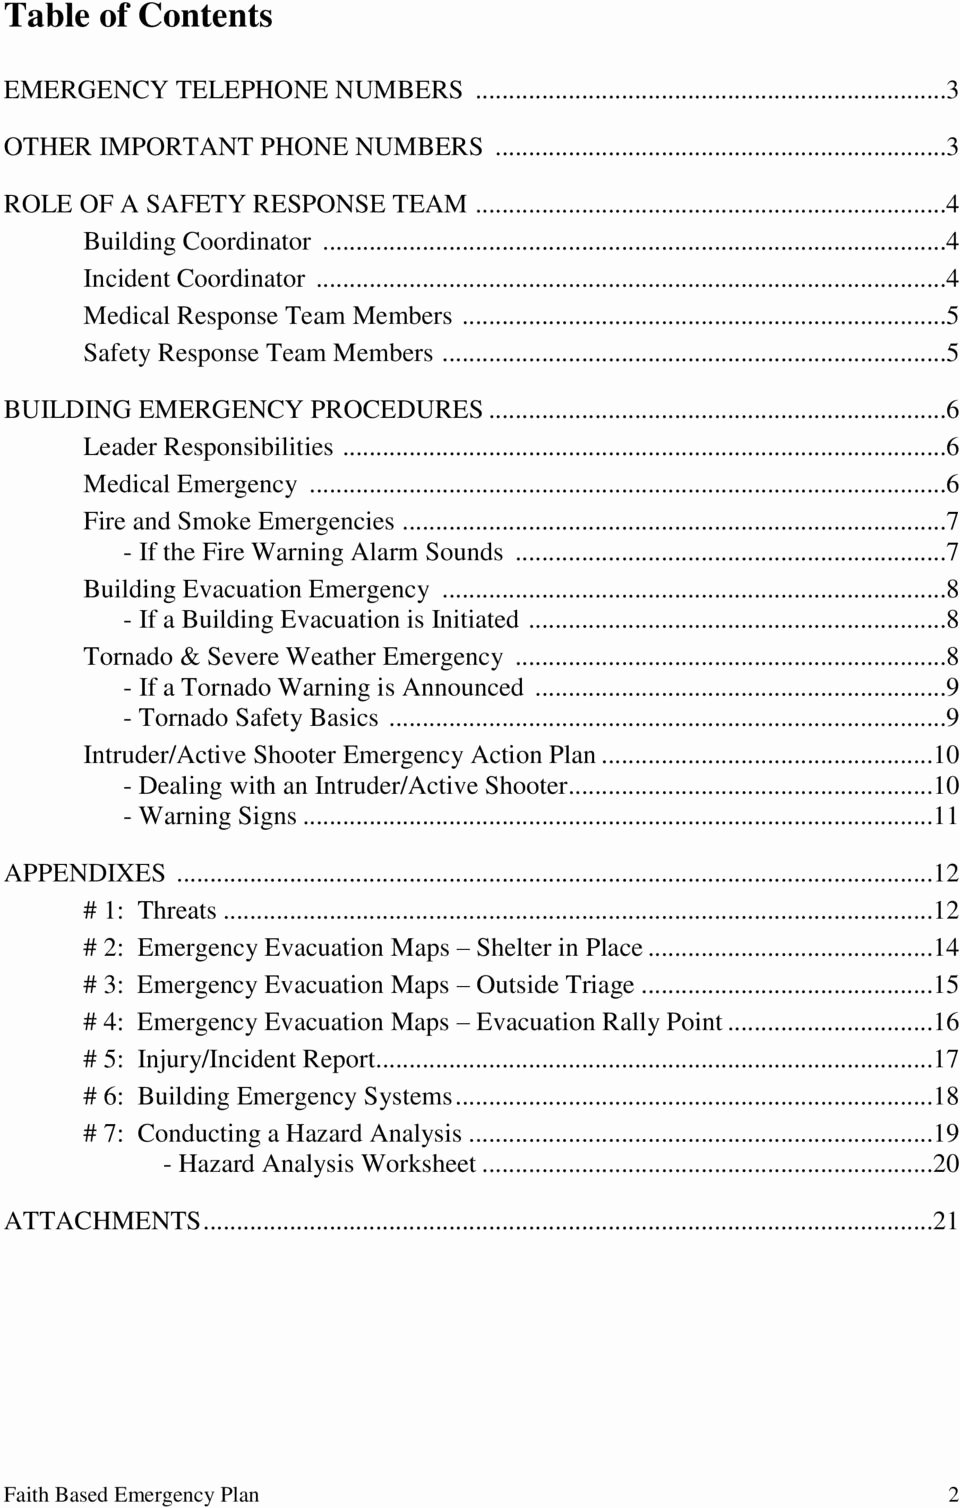 Active Shooter Response Plan Template Awesome Emergency Plan Template for Faith Based organizations Pdf